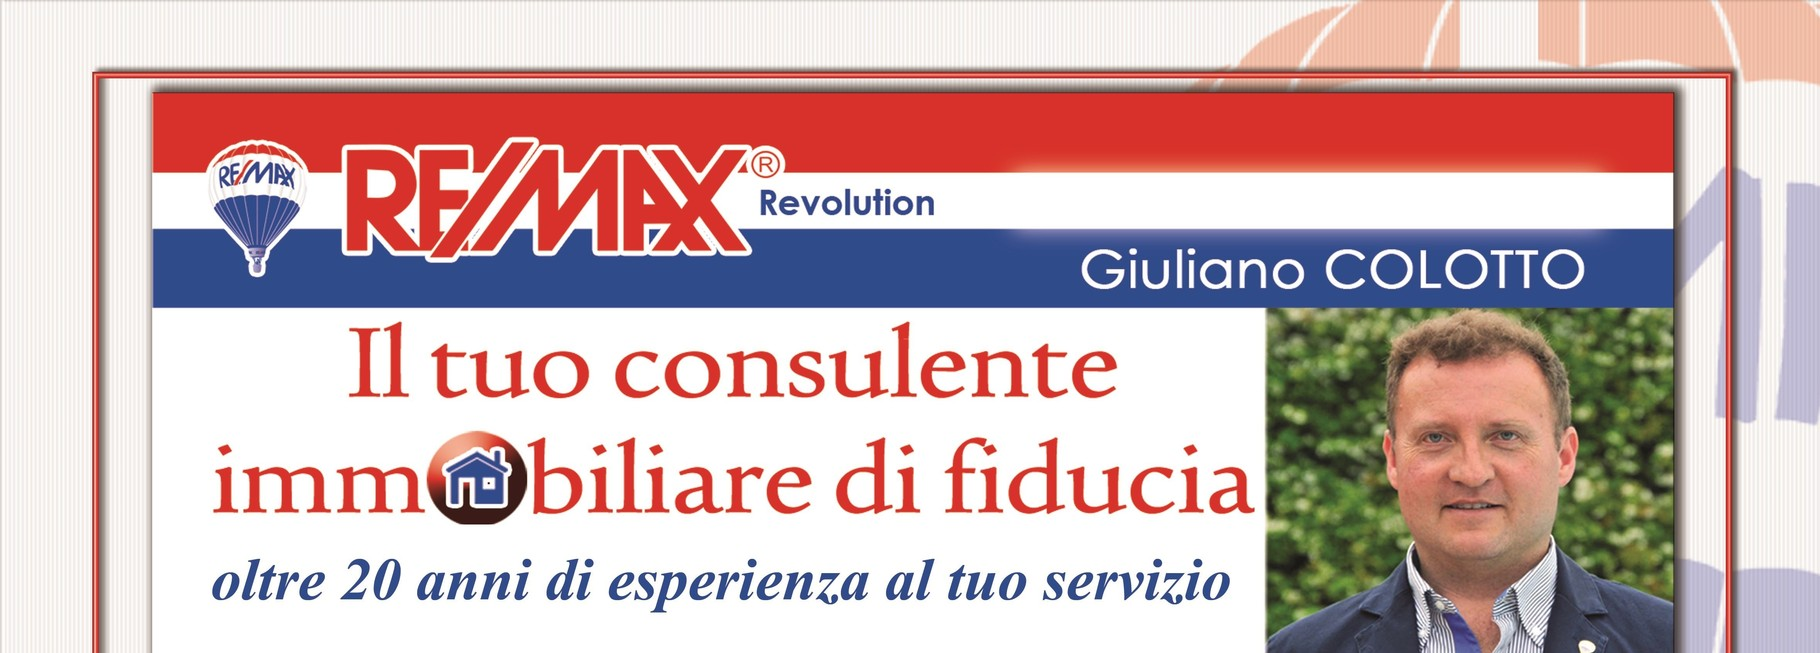 http://www.remax.it/gcolotto